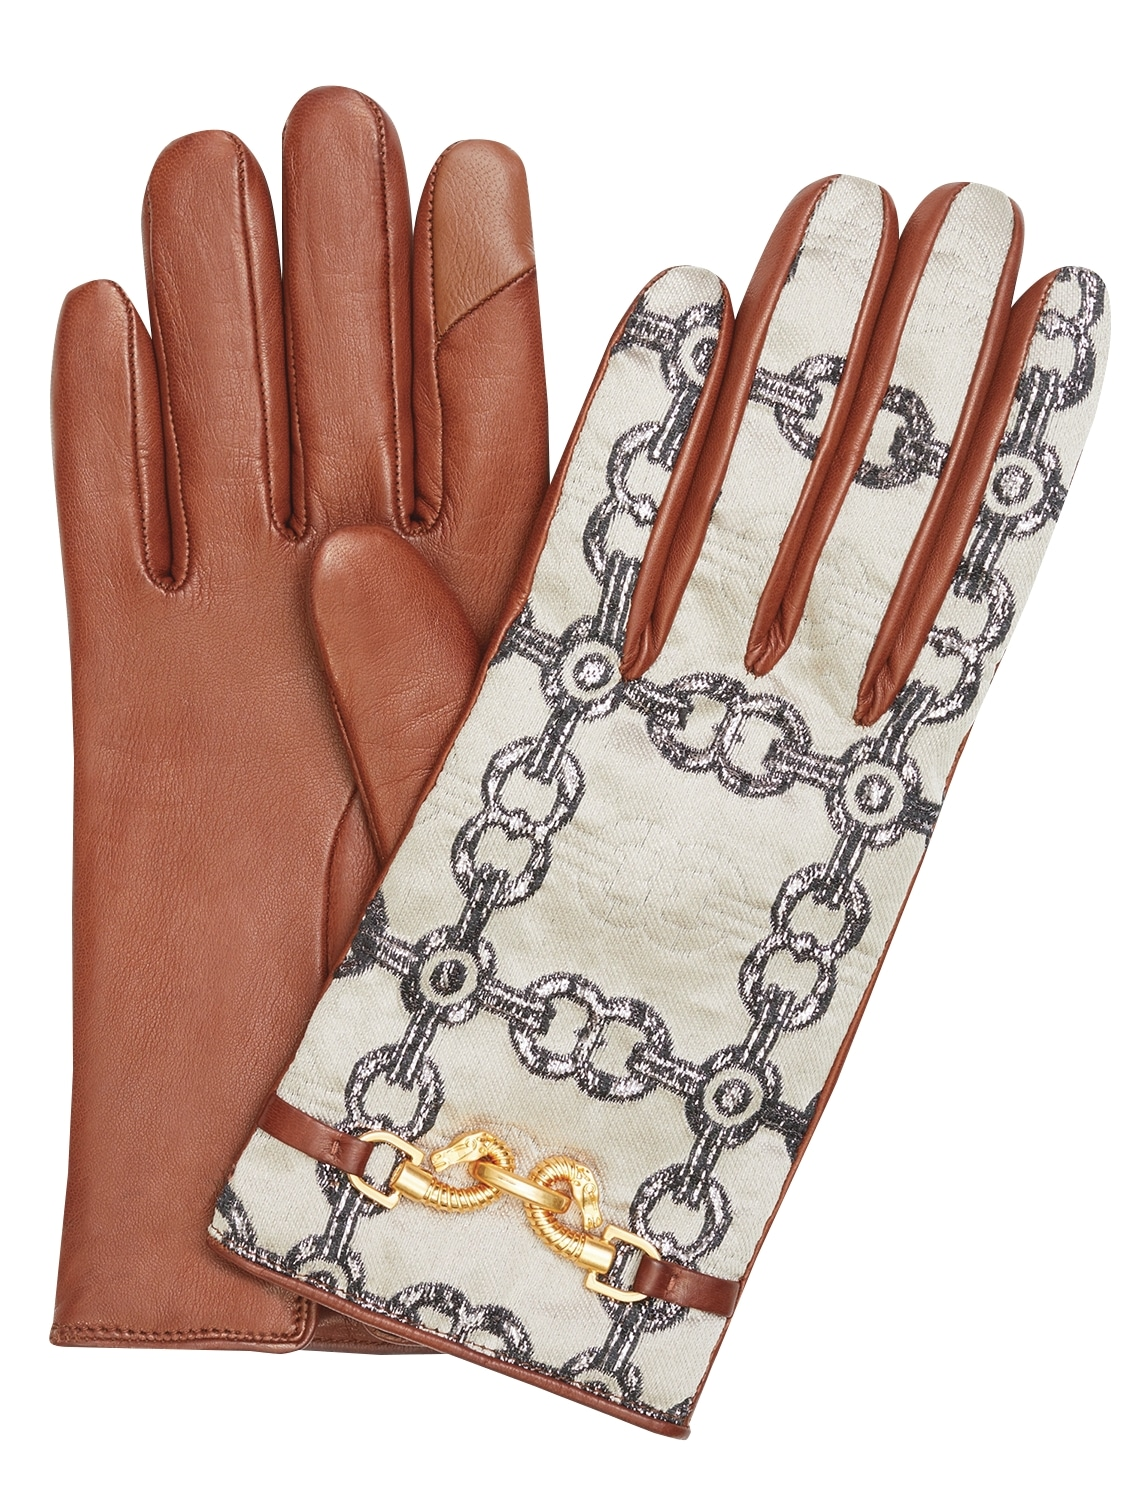 TB_Jessa_Glove_58007_in_Multi.jpg